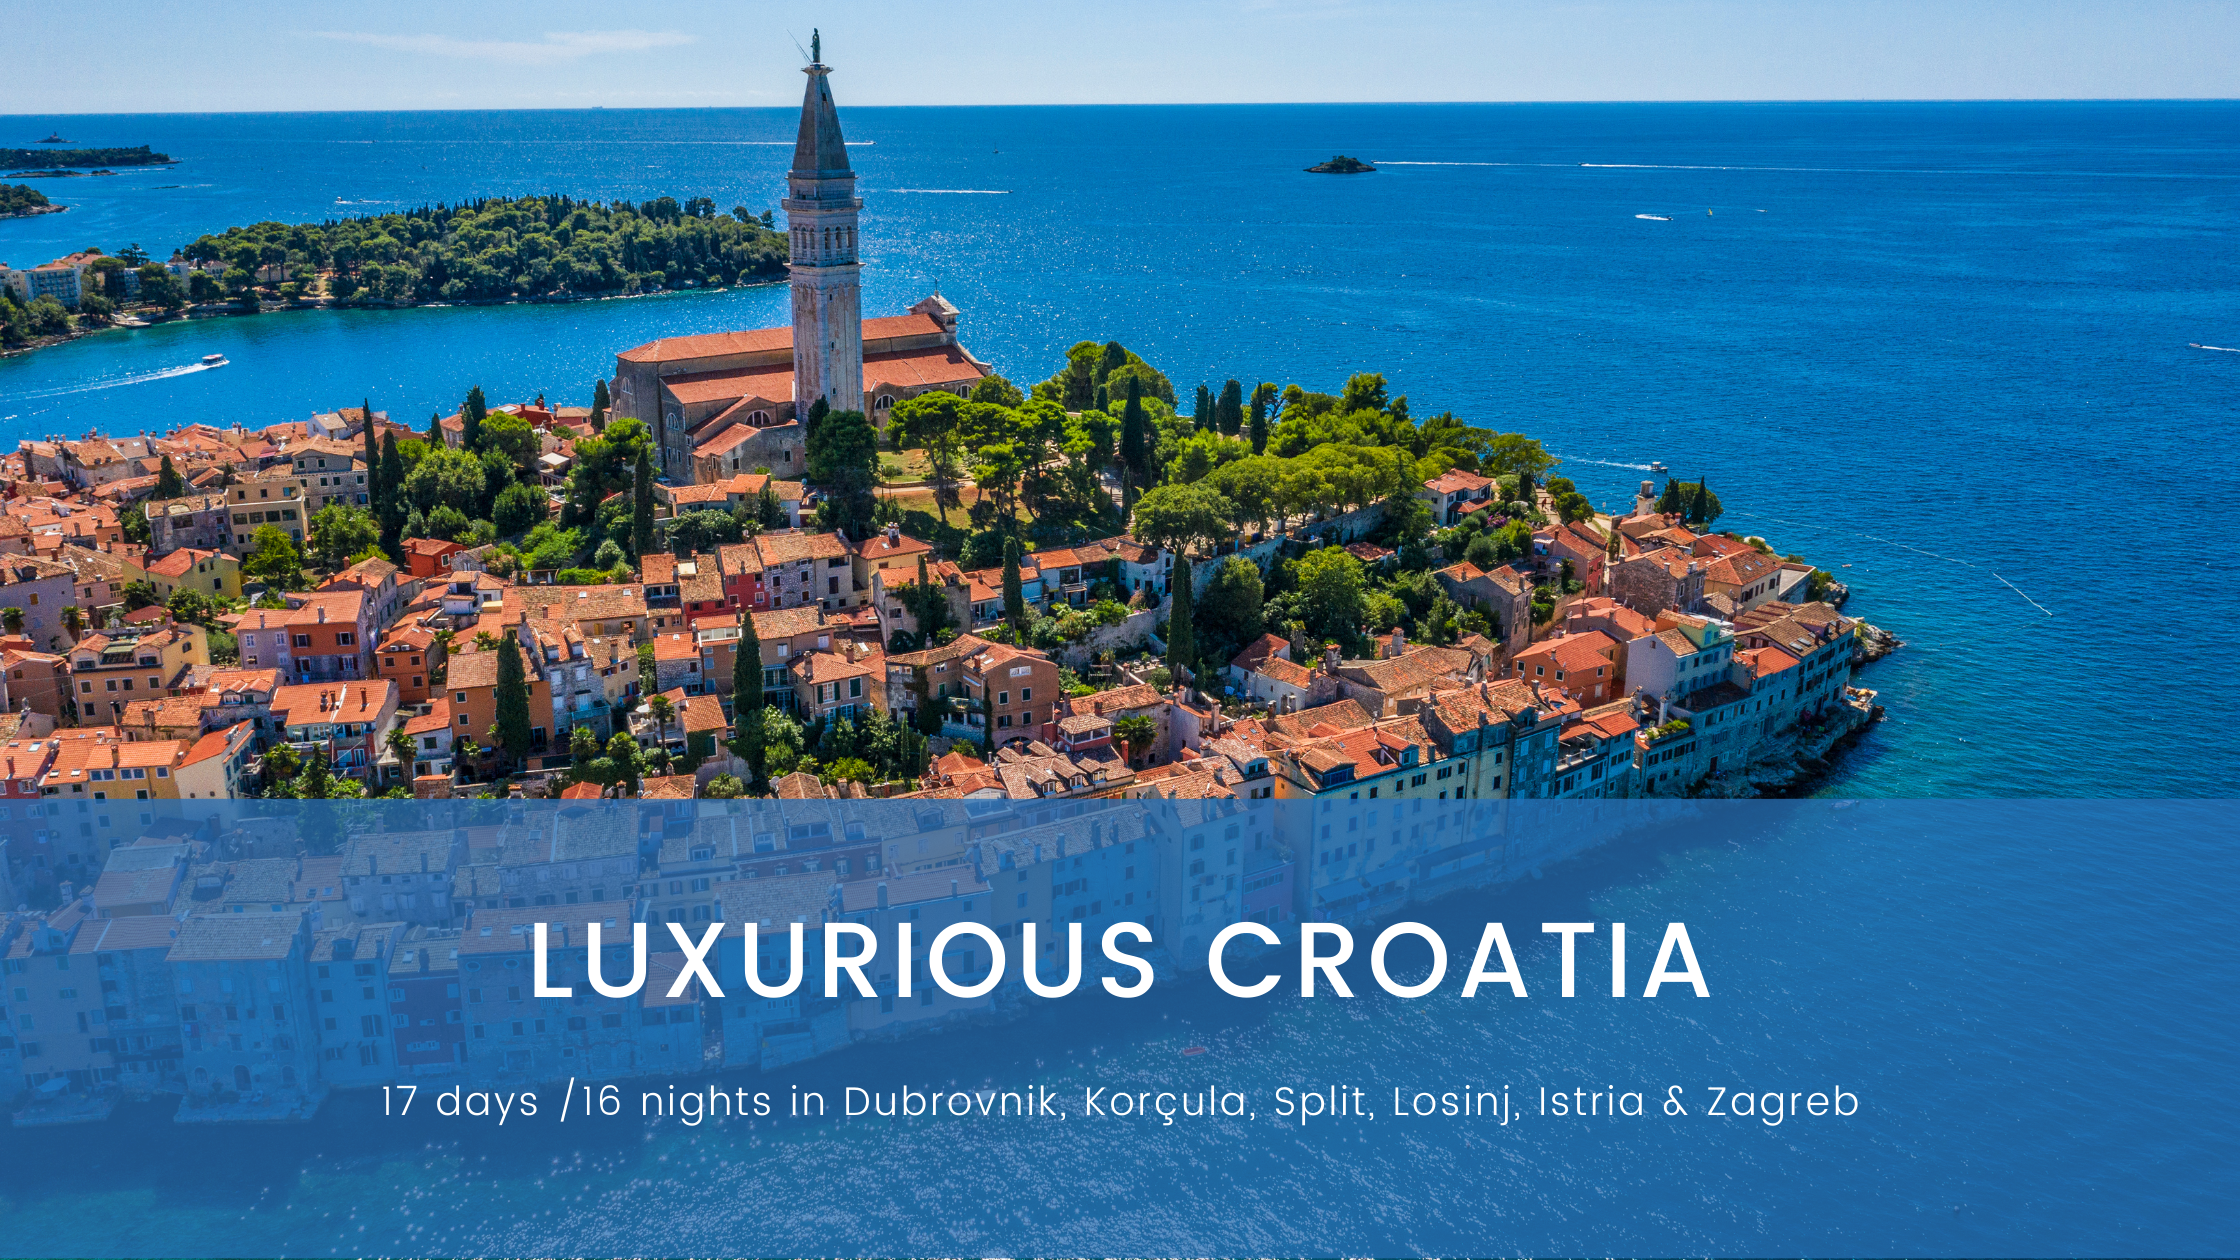 Luxurious Croatia